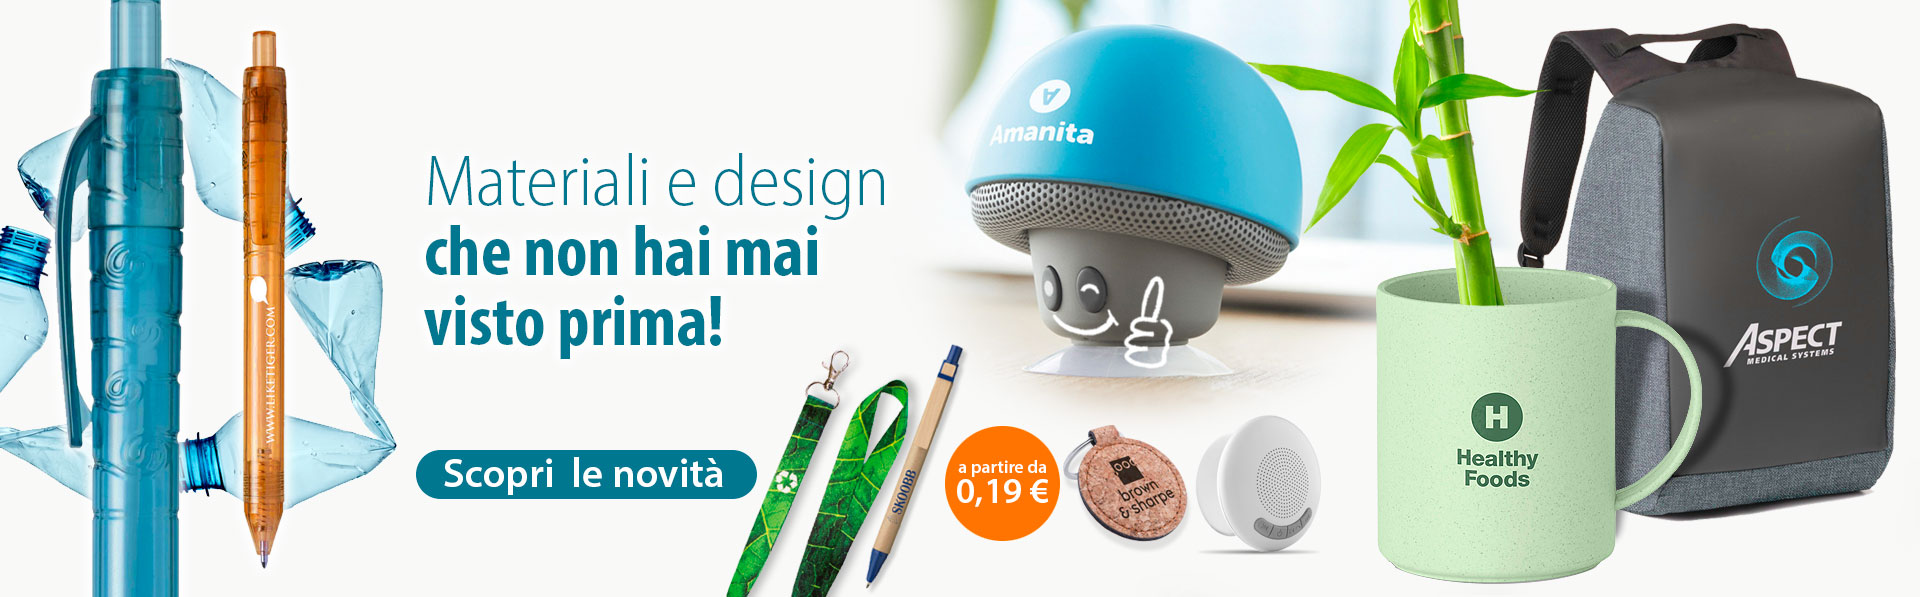 materiali e design innovativi